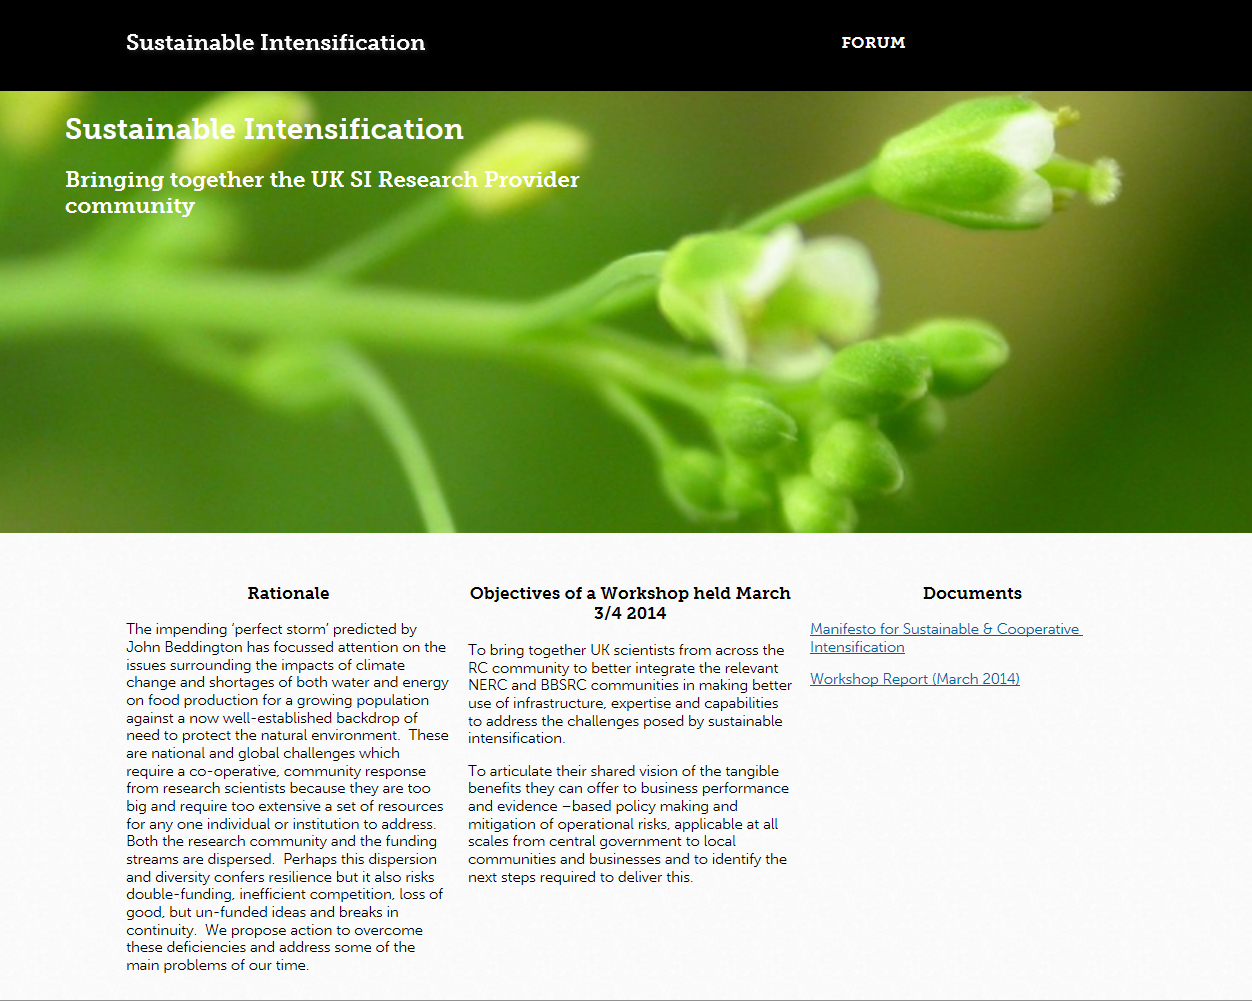 Screenshot of the Sustainable Intensification website